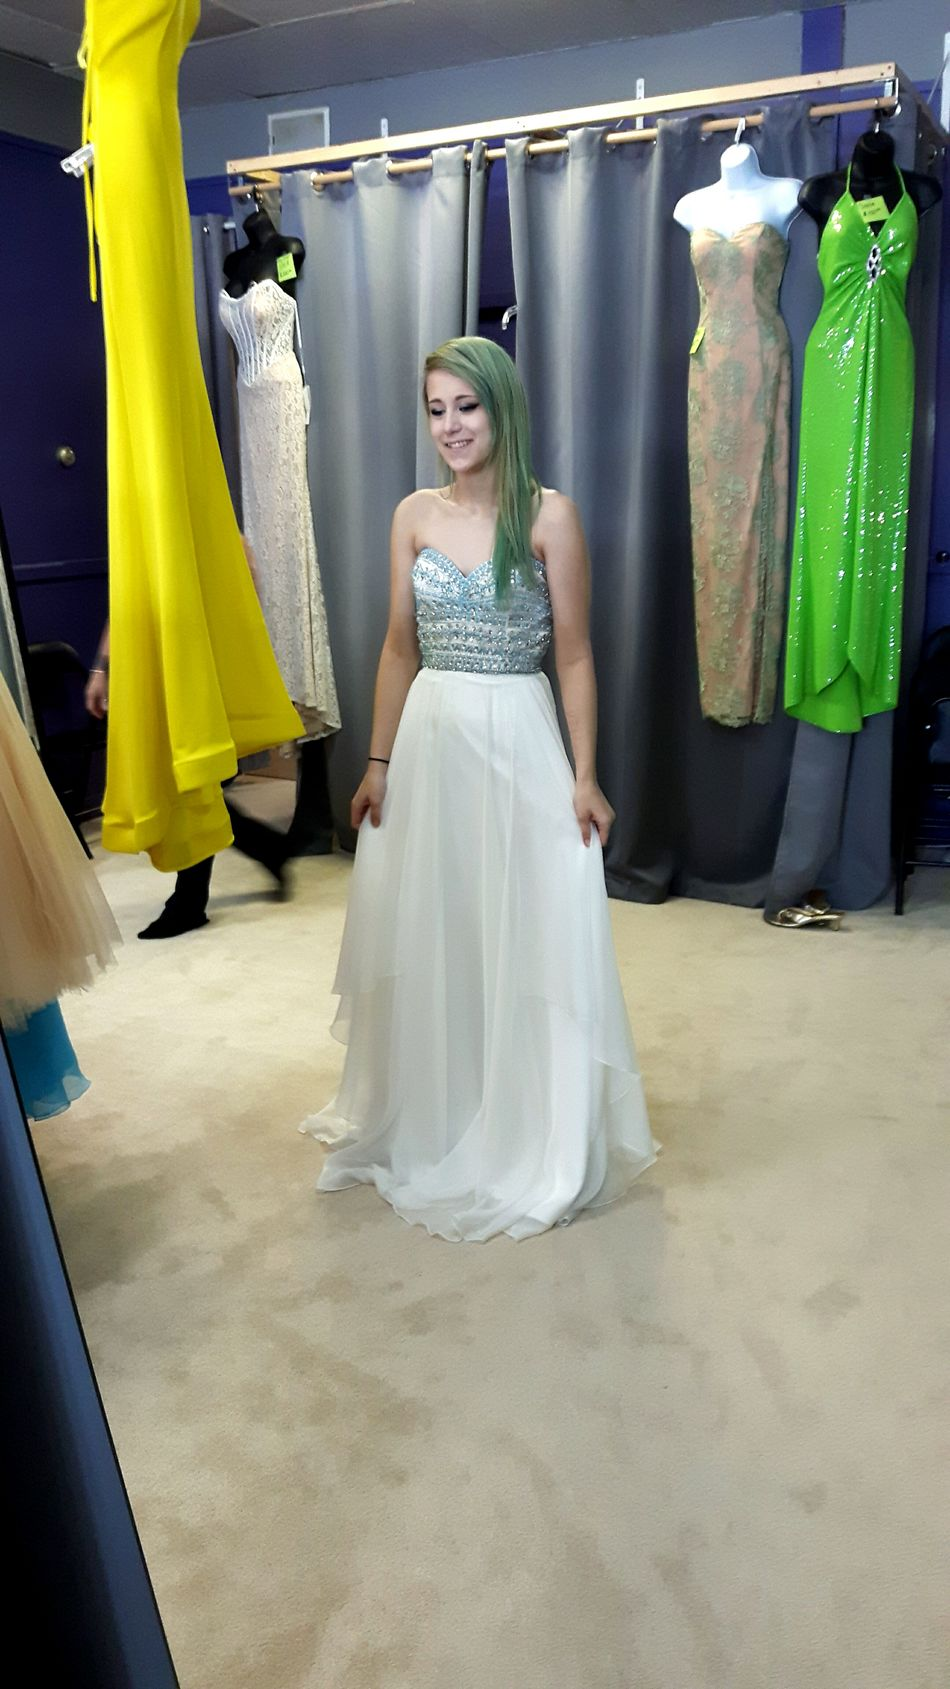 Fashion Only Women Fitting Room Adult Boutique Sparkly Blue Happy Prettygirl Girls Beauty Beautiful Grad 2k17 Graduation Prom Whitedress Life Events Winter Mesmerizing Awesome Greenhair BlueHair Pretty Smile